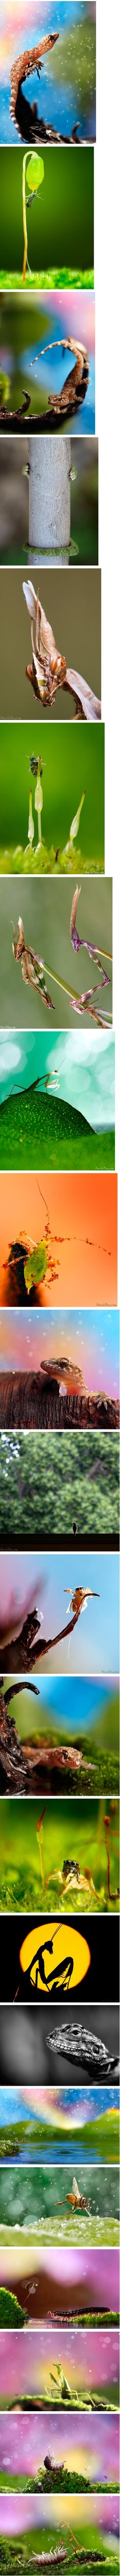 Macro Shots By Nadav Bagim